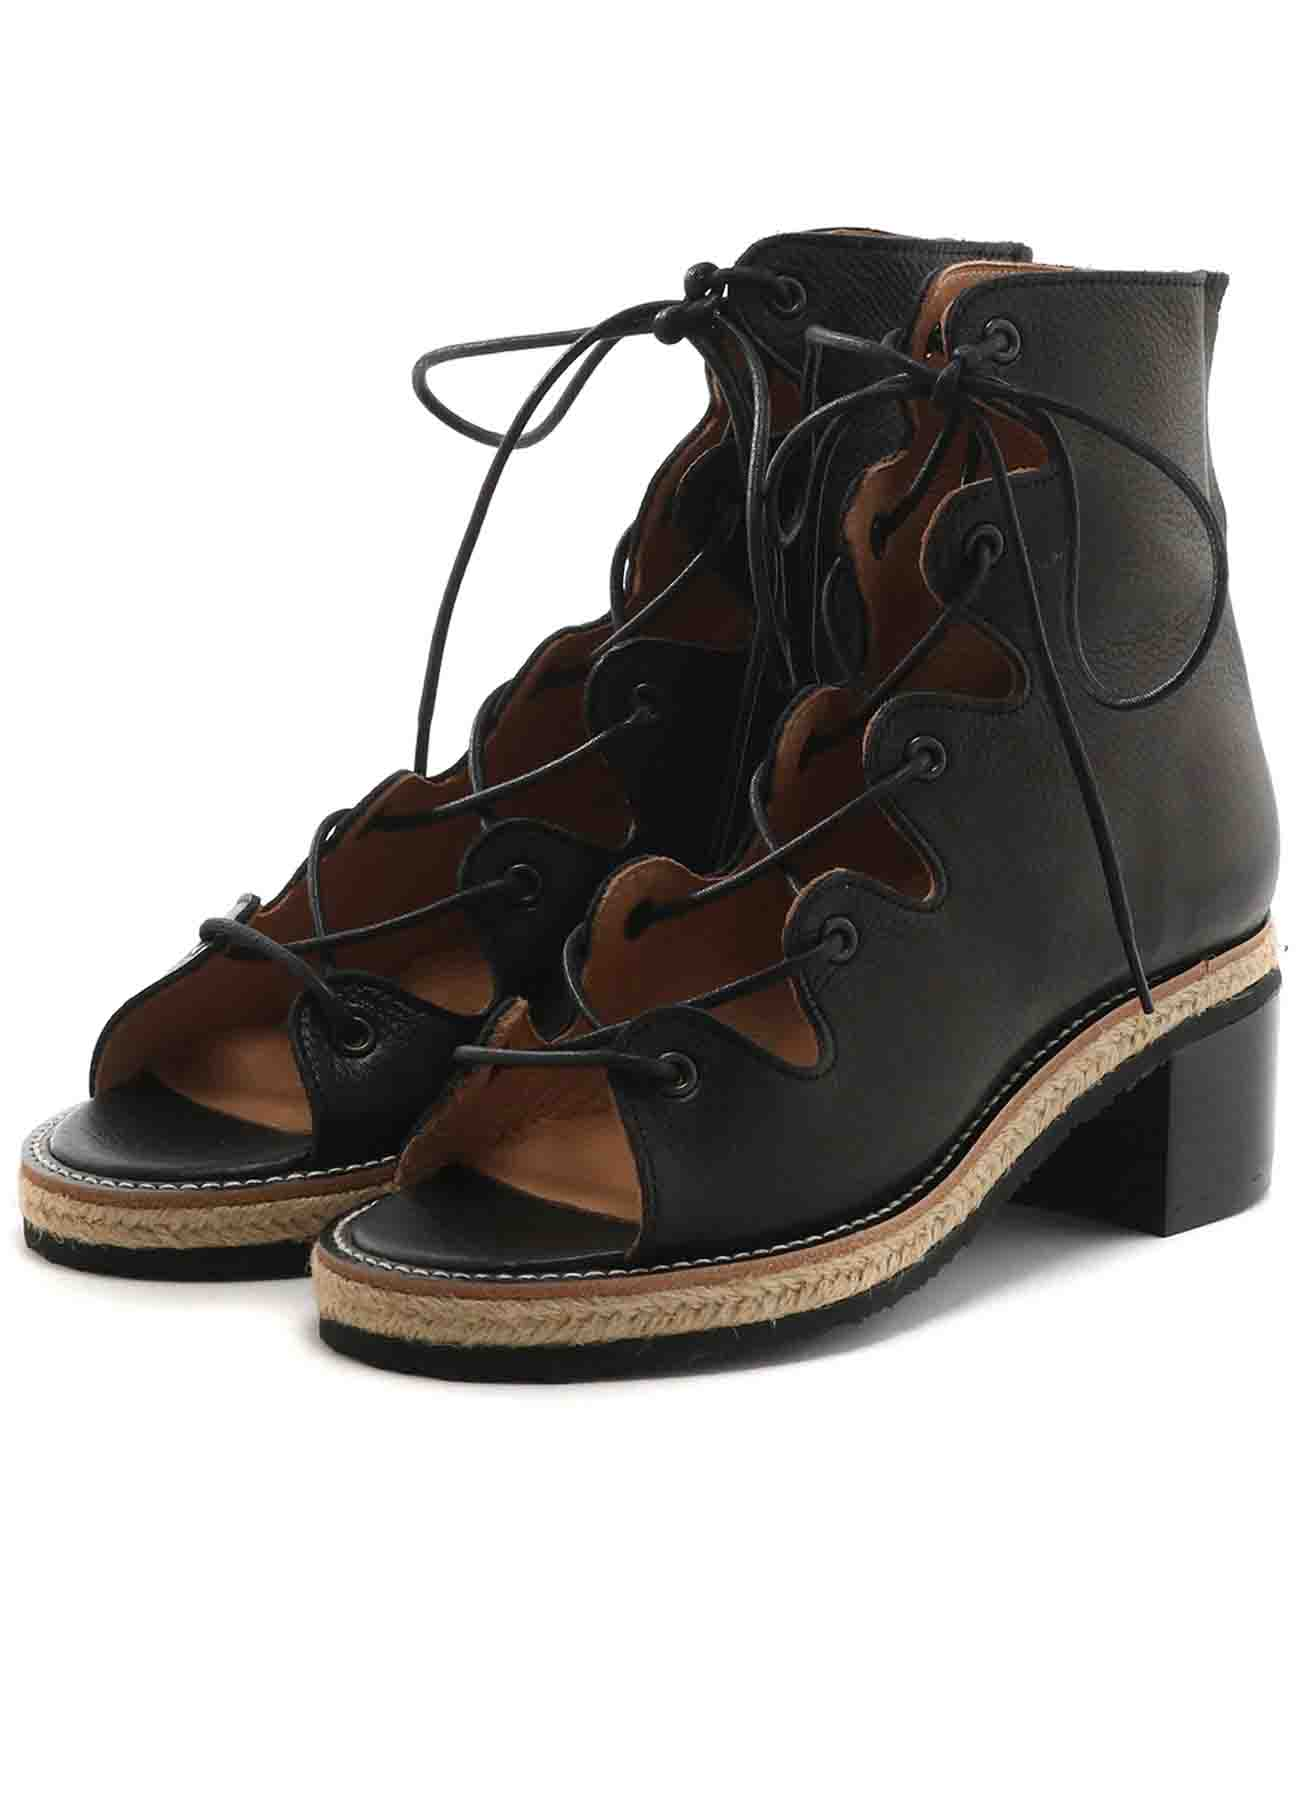 SOFT MATTE LEATHER BOOTS SANDALS